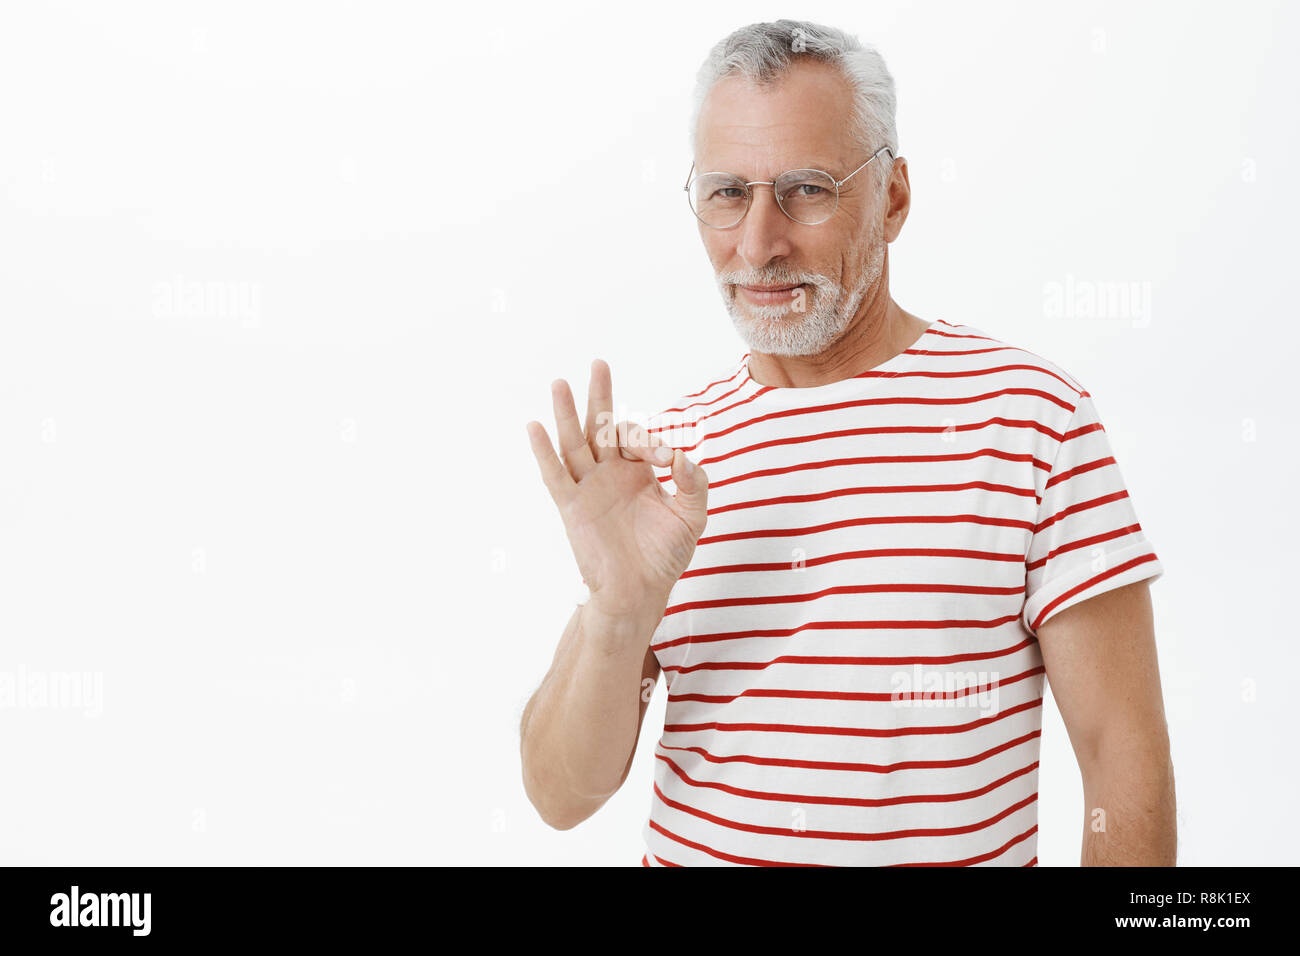 Old charismatic and self-assured man staying chill and cool showing okay gesture and smiling satisfied at camera assuring he got everything under control posing confident and assertive over grey wall - Stock Image